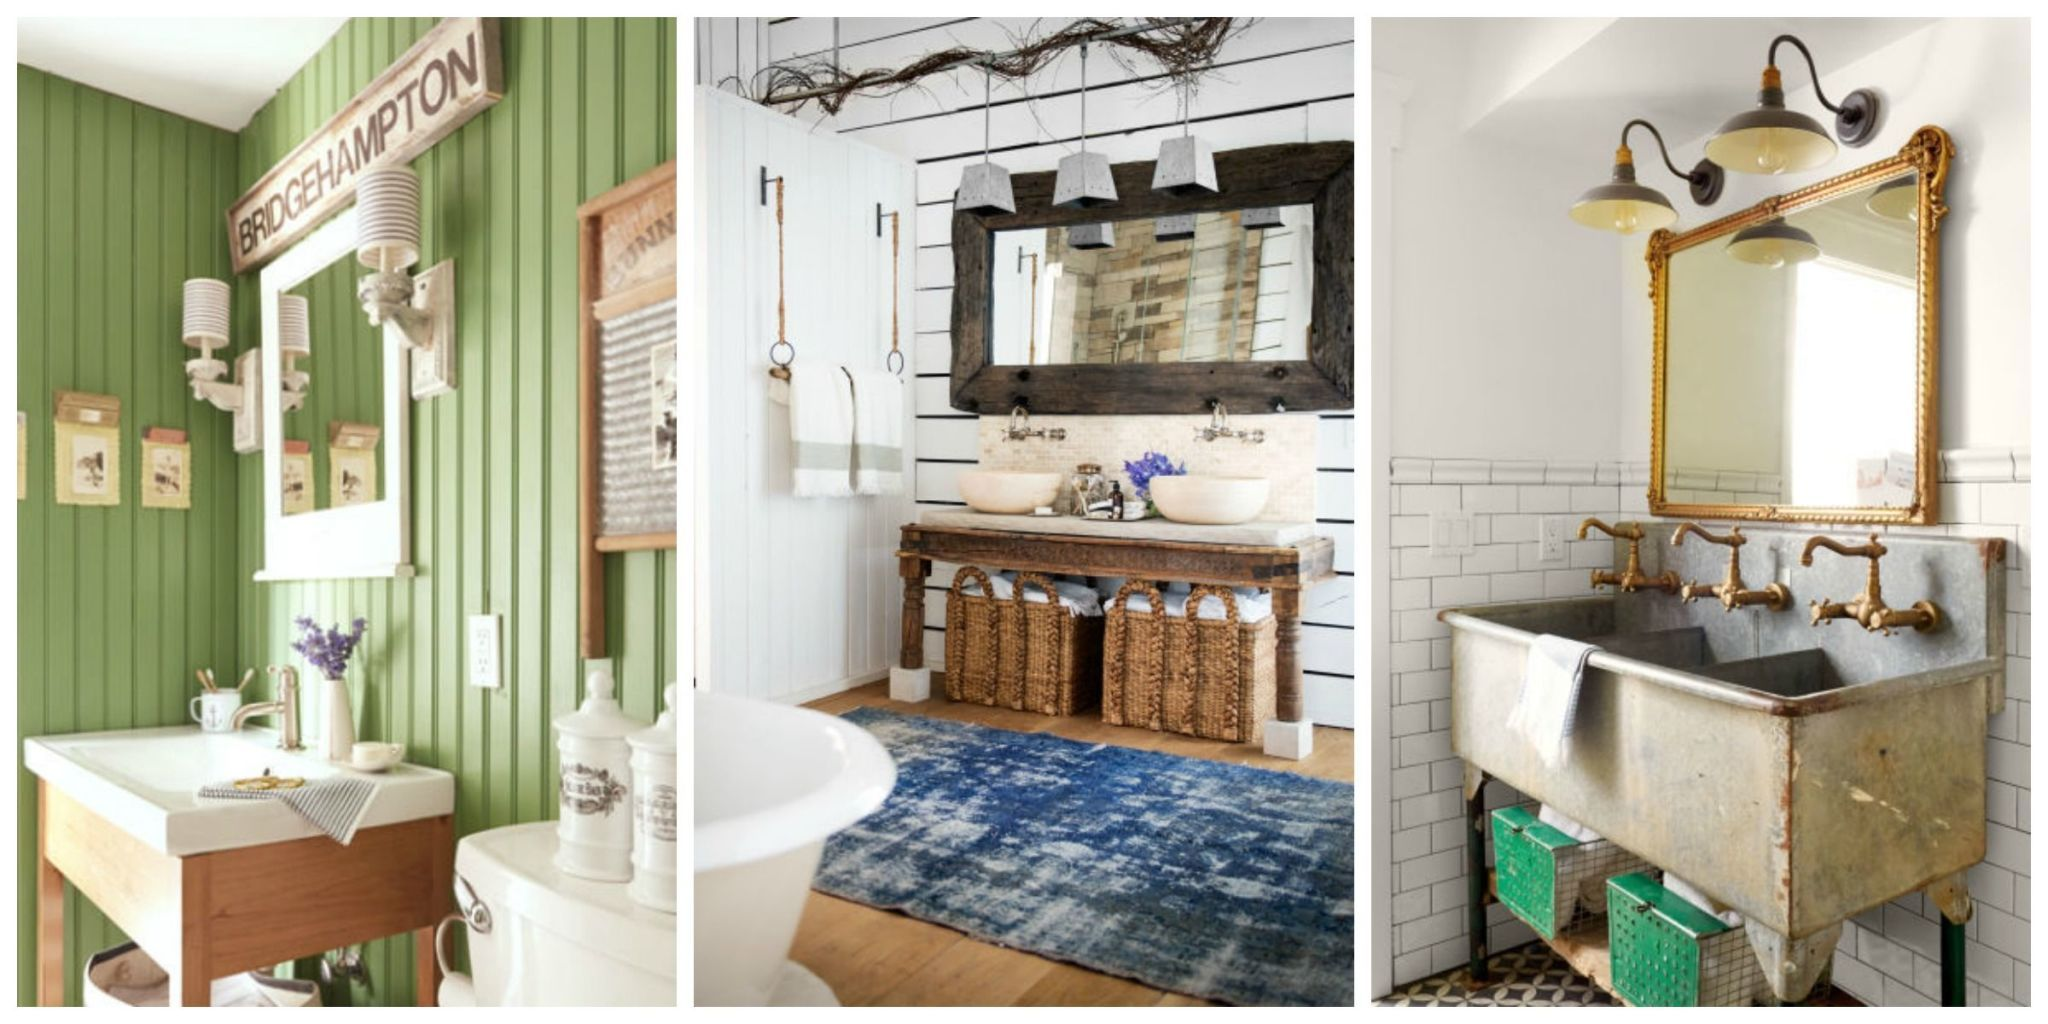 From Vintage Fixtures To Bold Wallpaper Patterns, These Beautiful Bathroom Design  Ideas Will Make Your Homeu0027s Smallest Room The Most Peaceful Spot In The ...